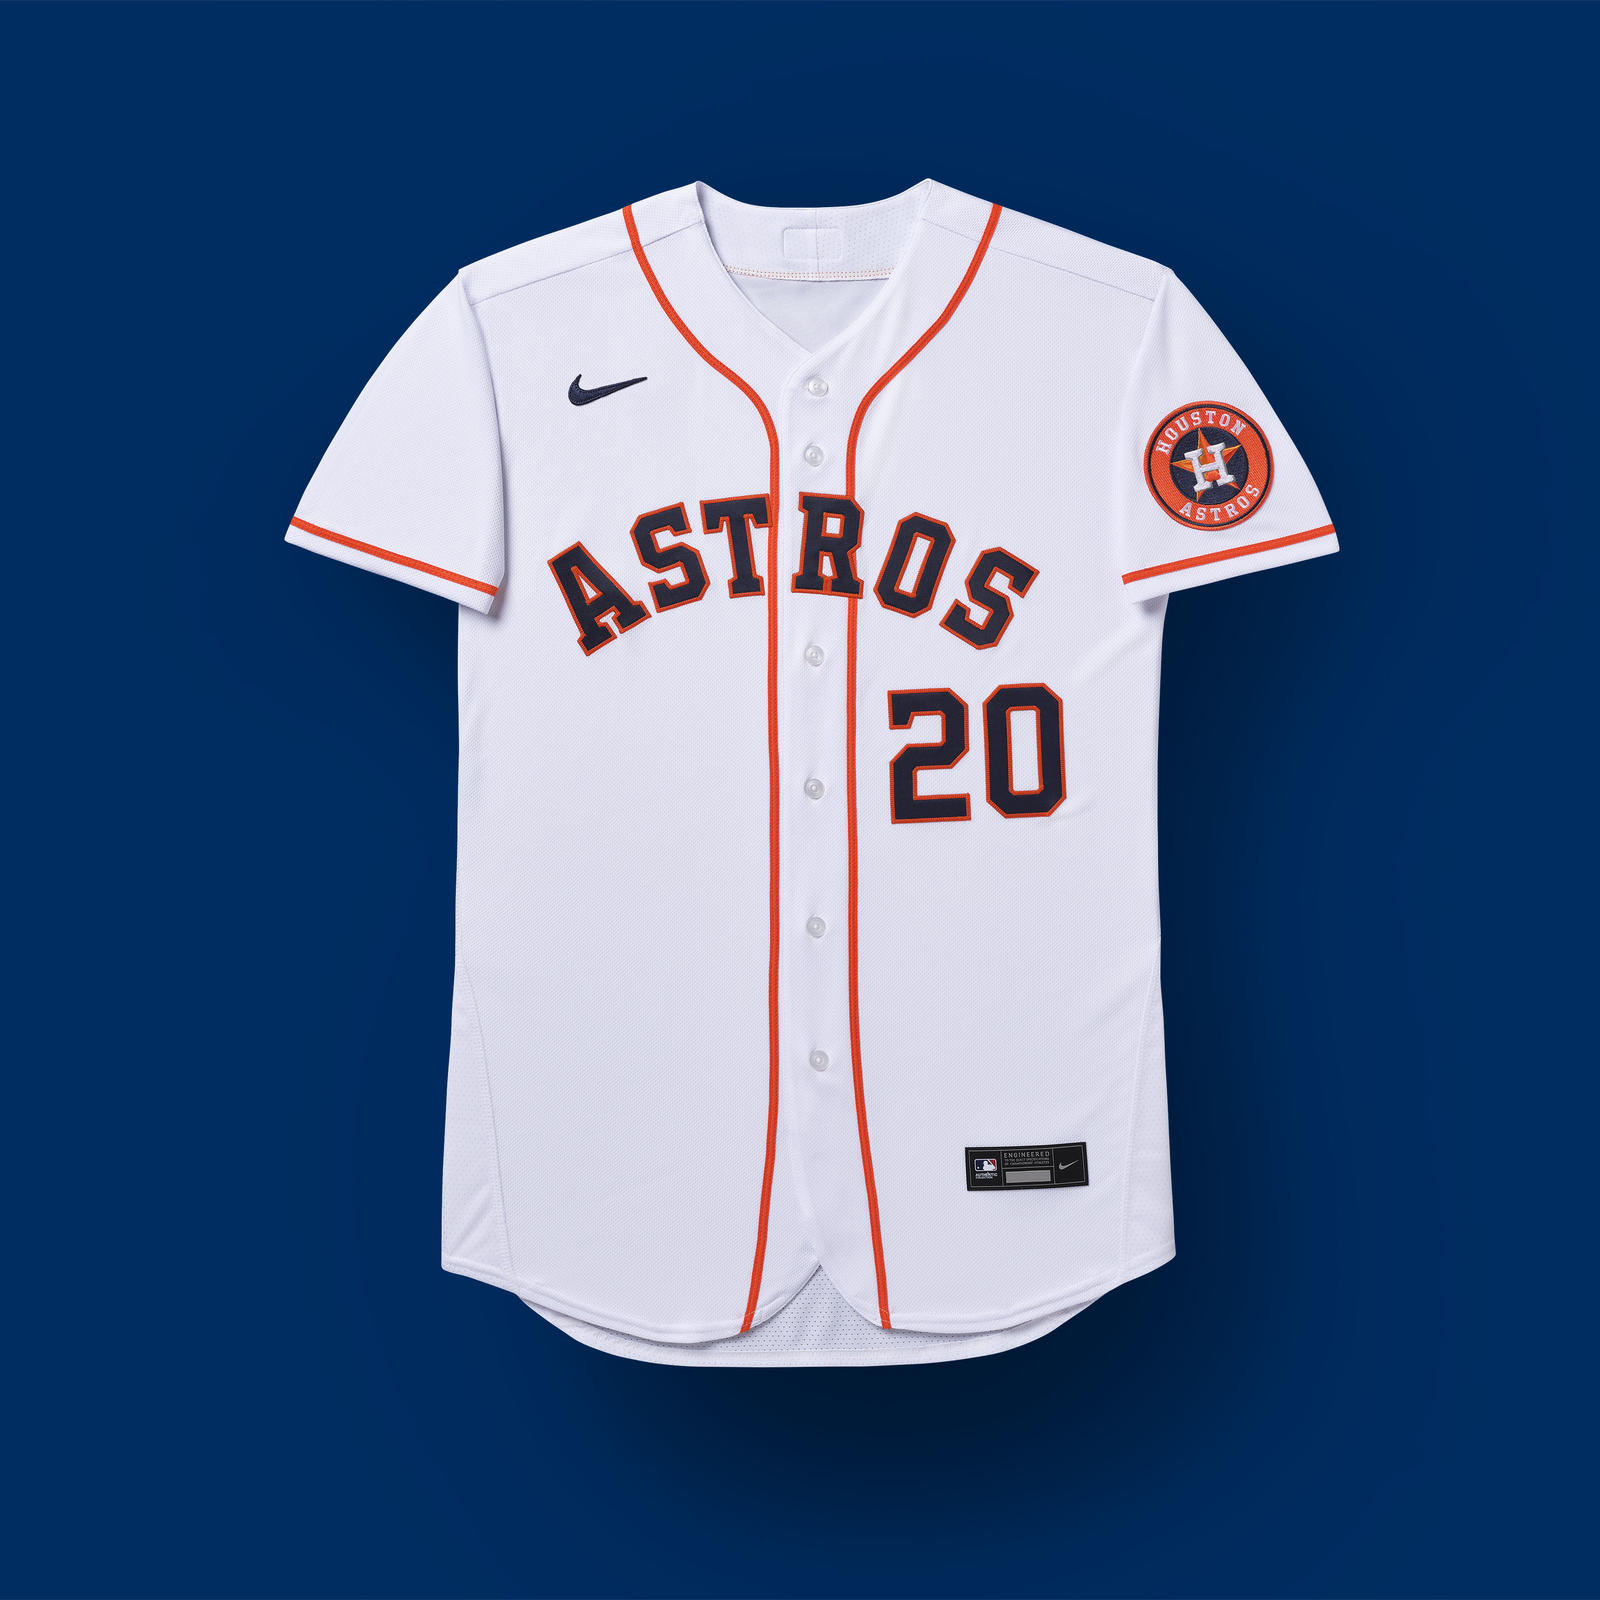 Nike x Major League Baseball Uniforms 2020 Official Images 24